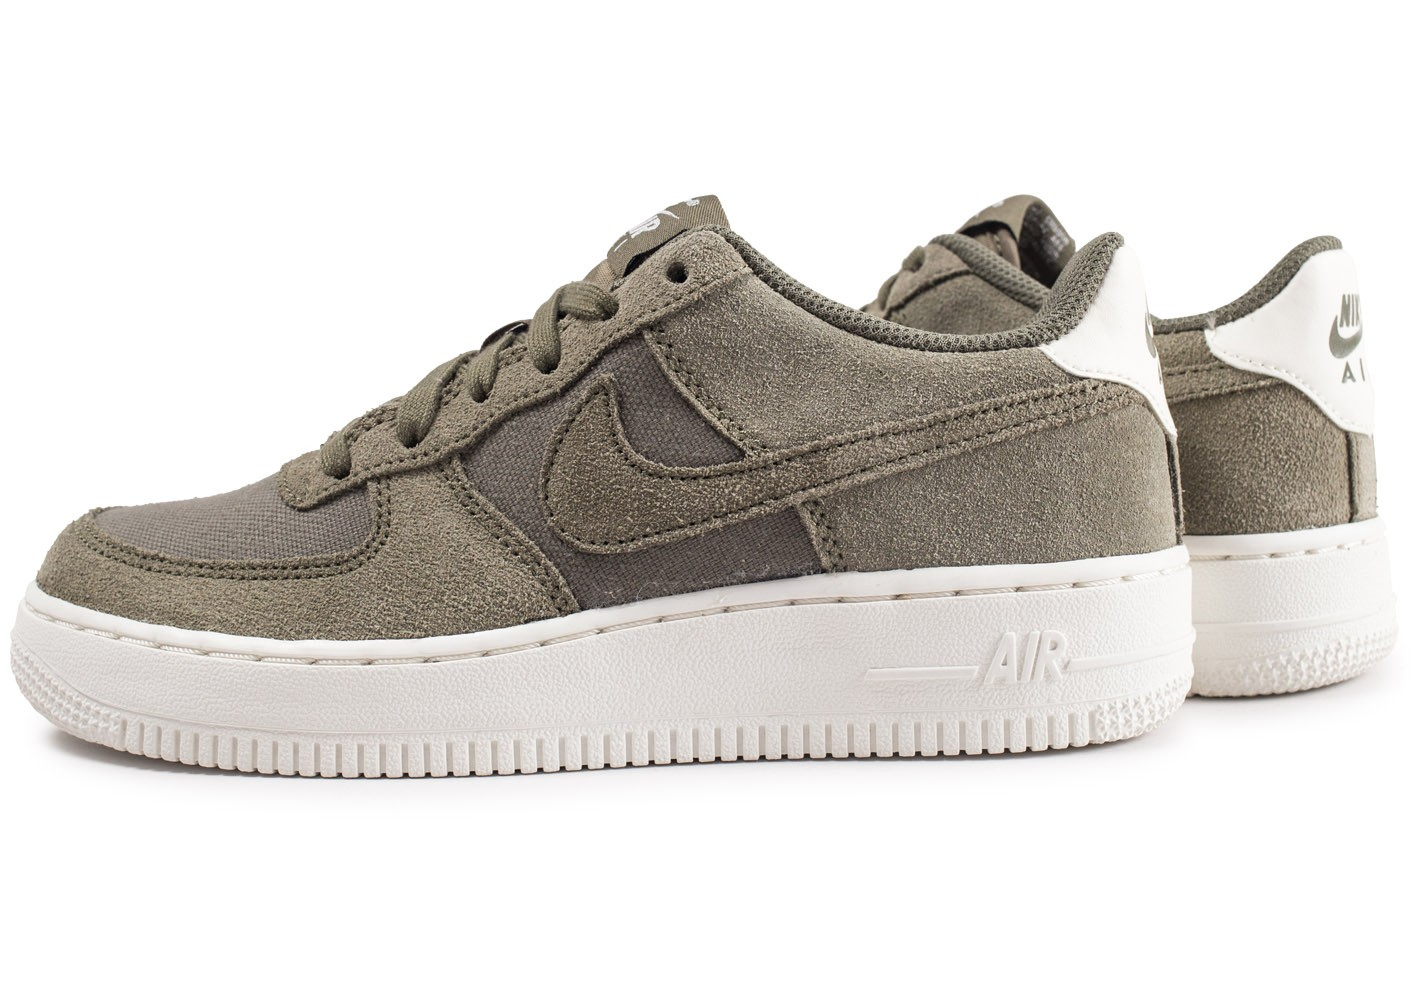 Force 1 Les Baskets Toutes Air Chaussures Suede Nike Kaki Junior 6bf7gy